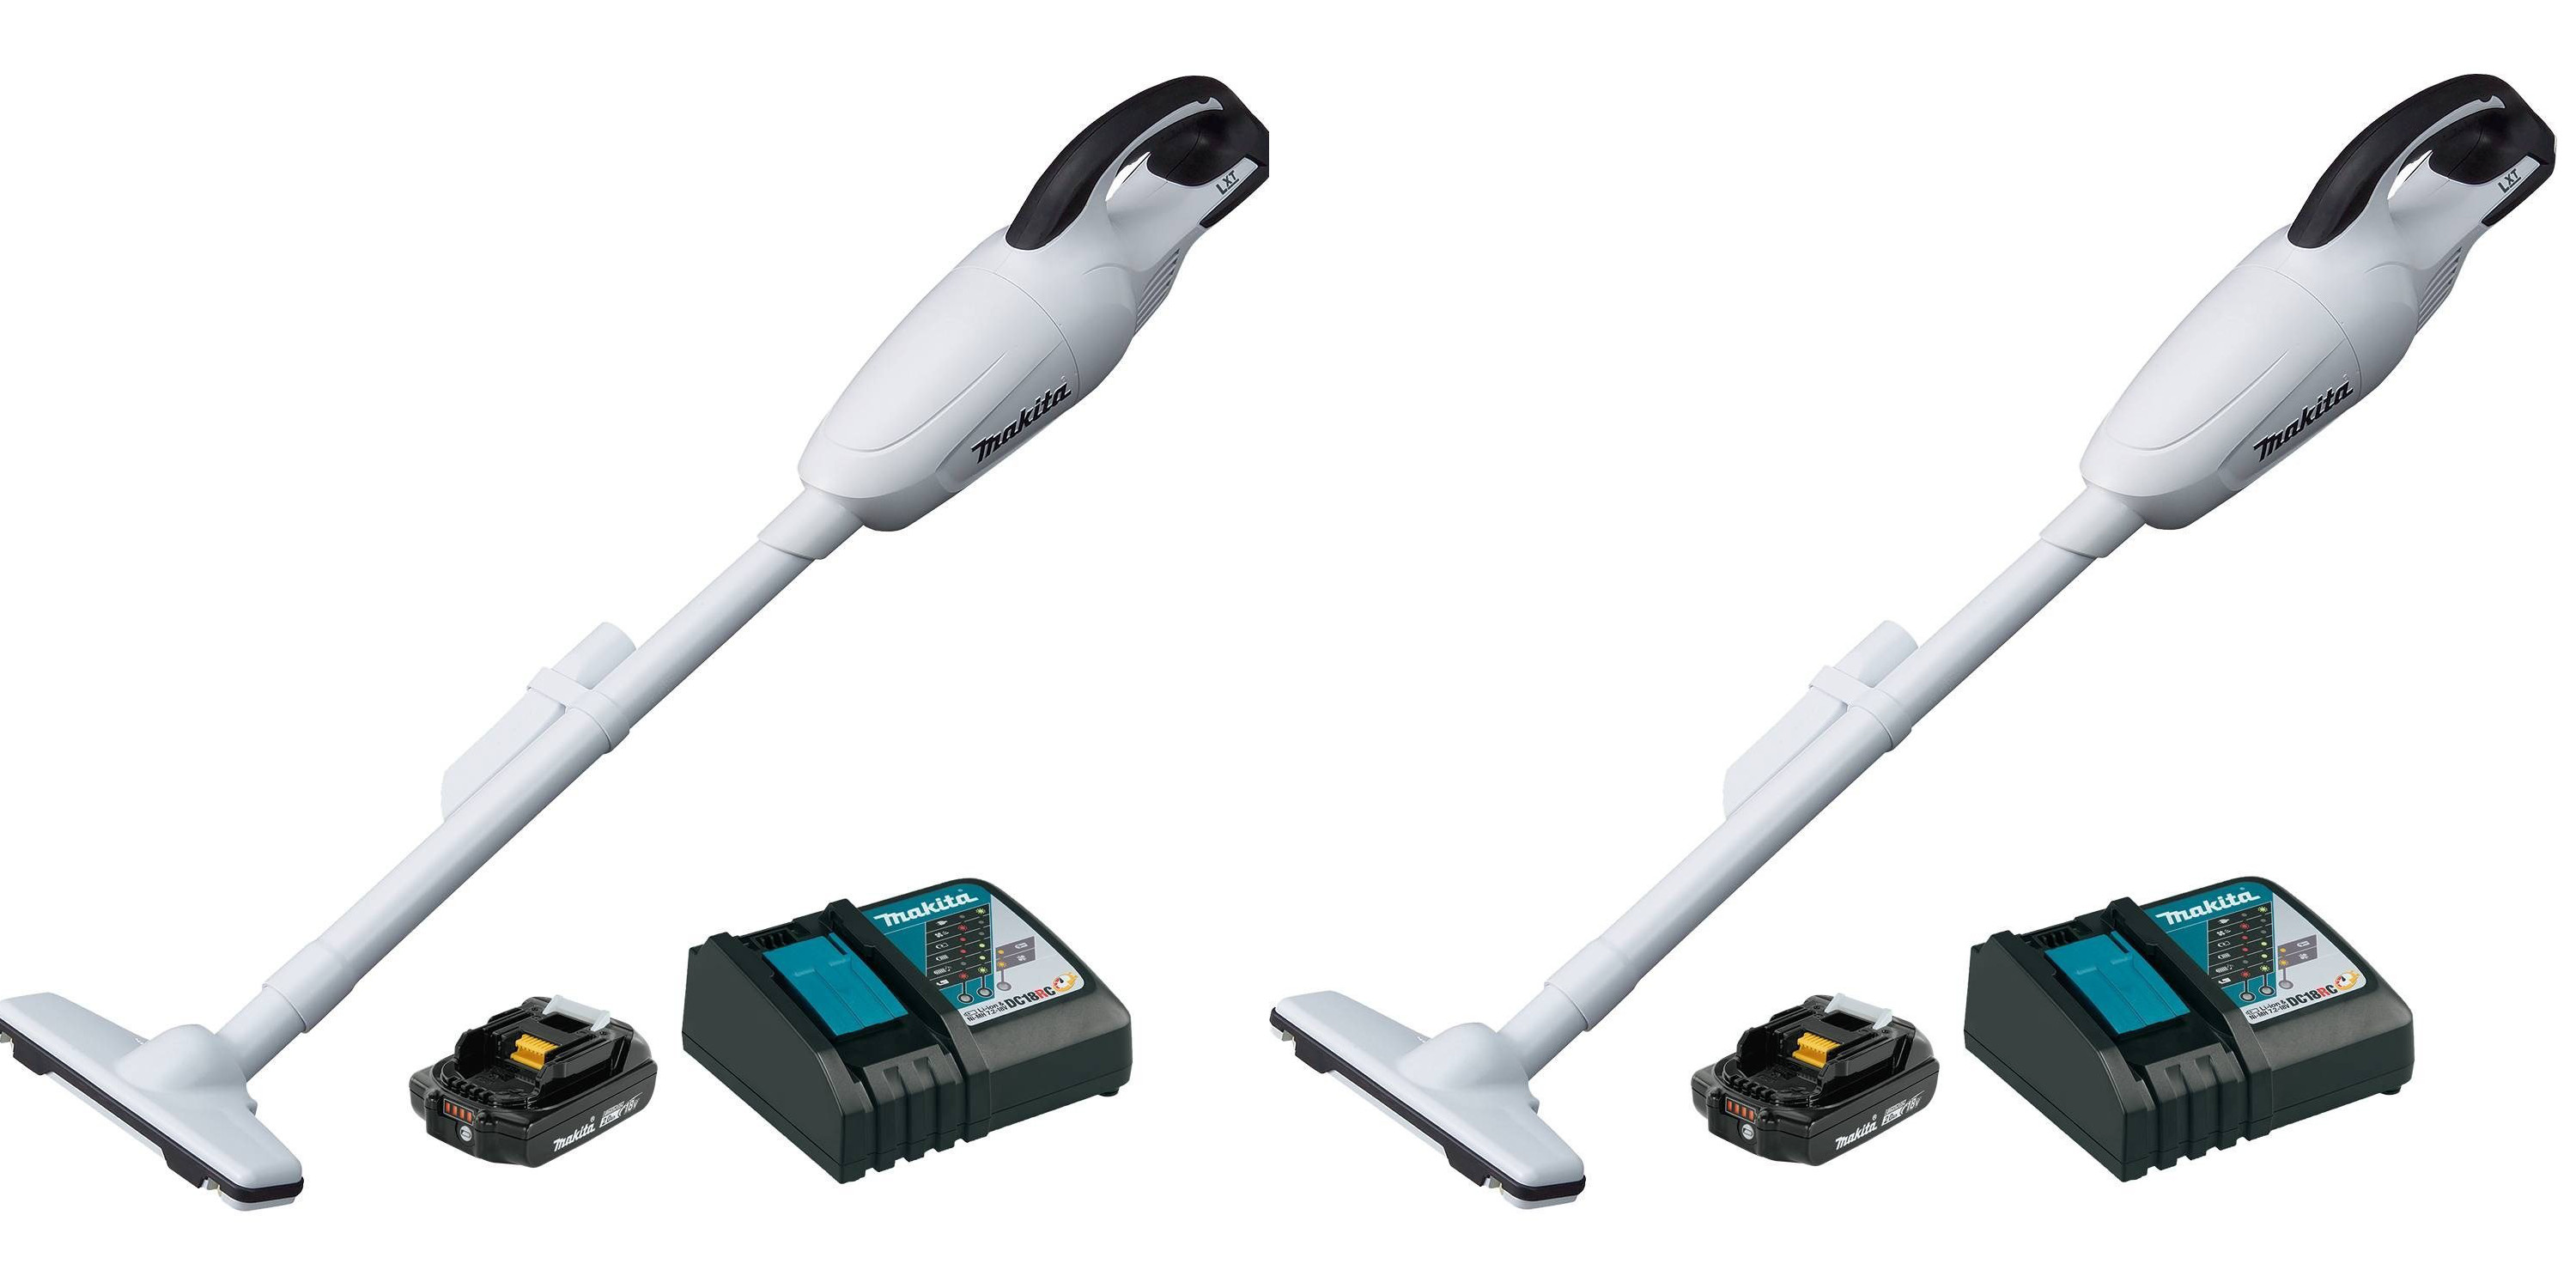 makita-18v-compact-lithium-ion-cordless-vacuum-kit-with-2-0-amp-battery-xlc02rb1w-5